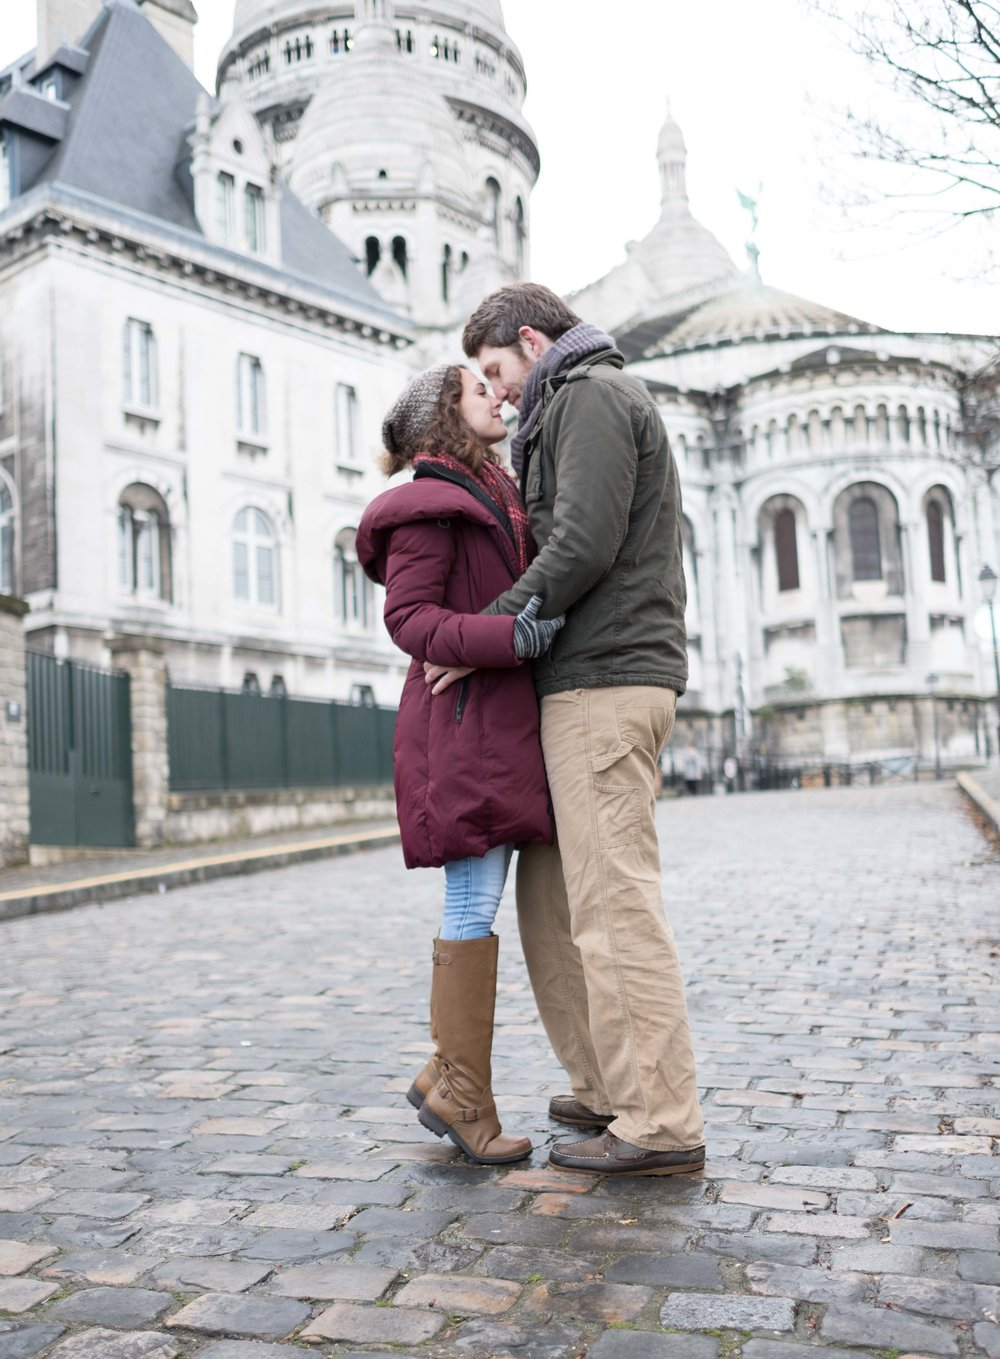 Couple in love embracing in Paris